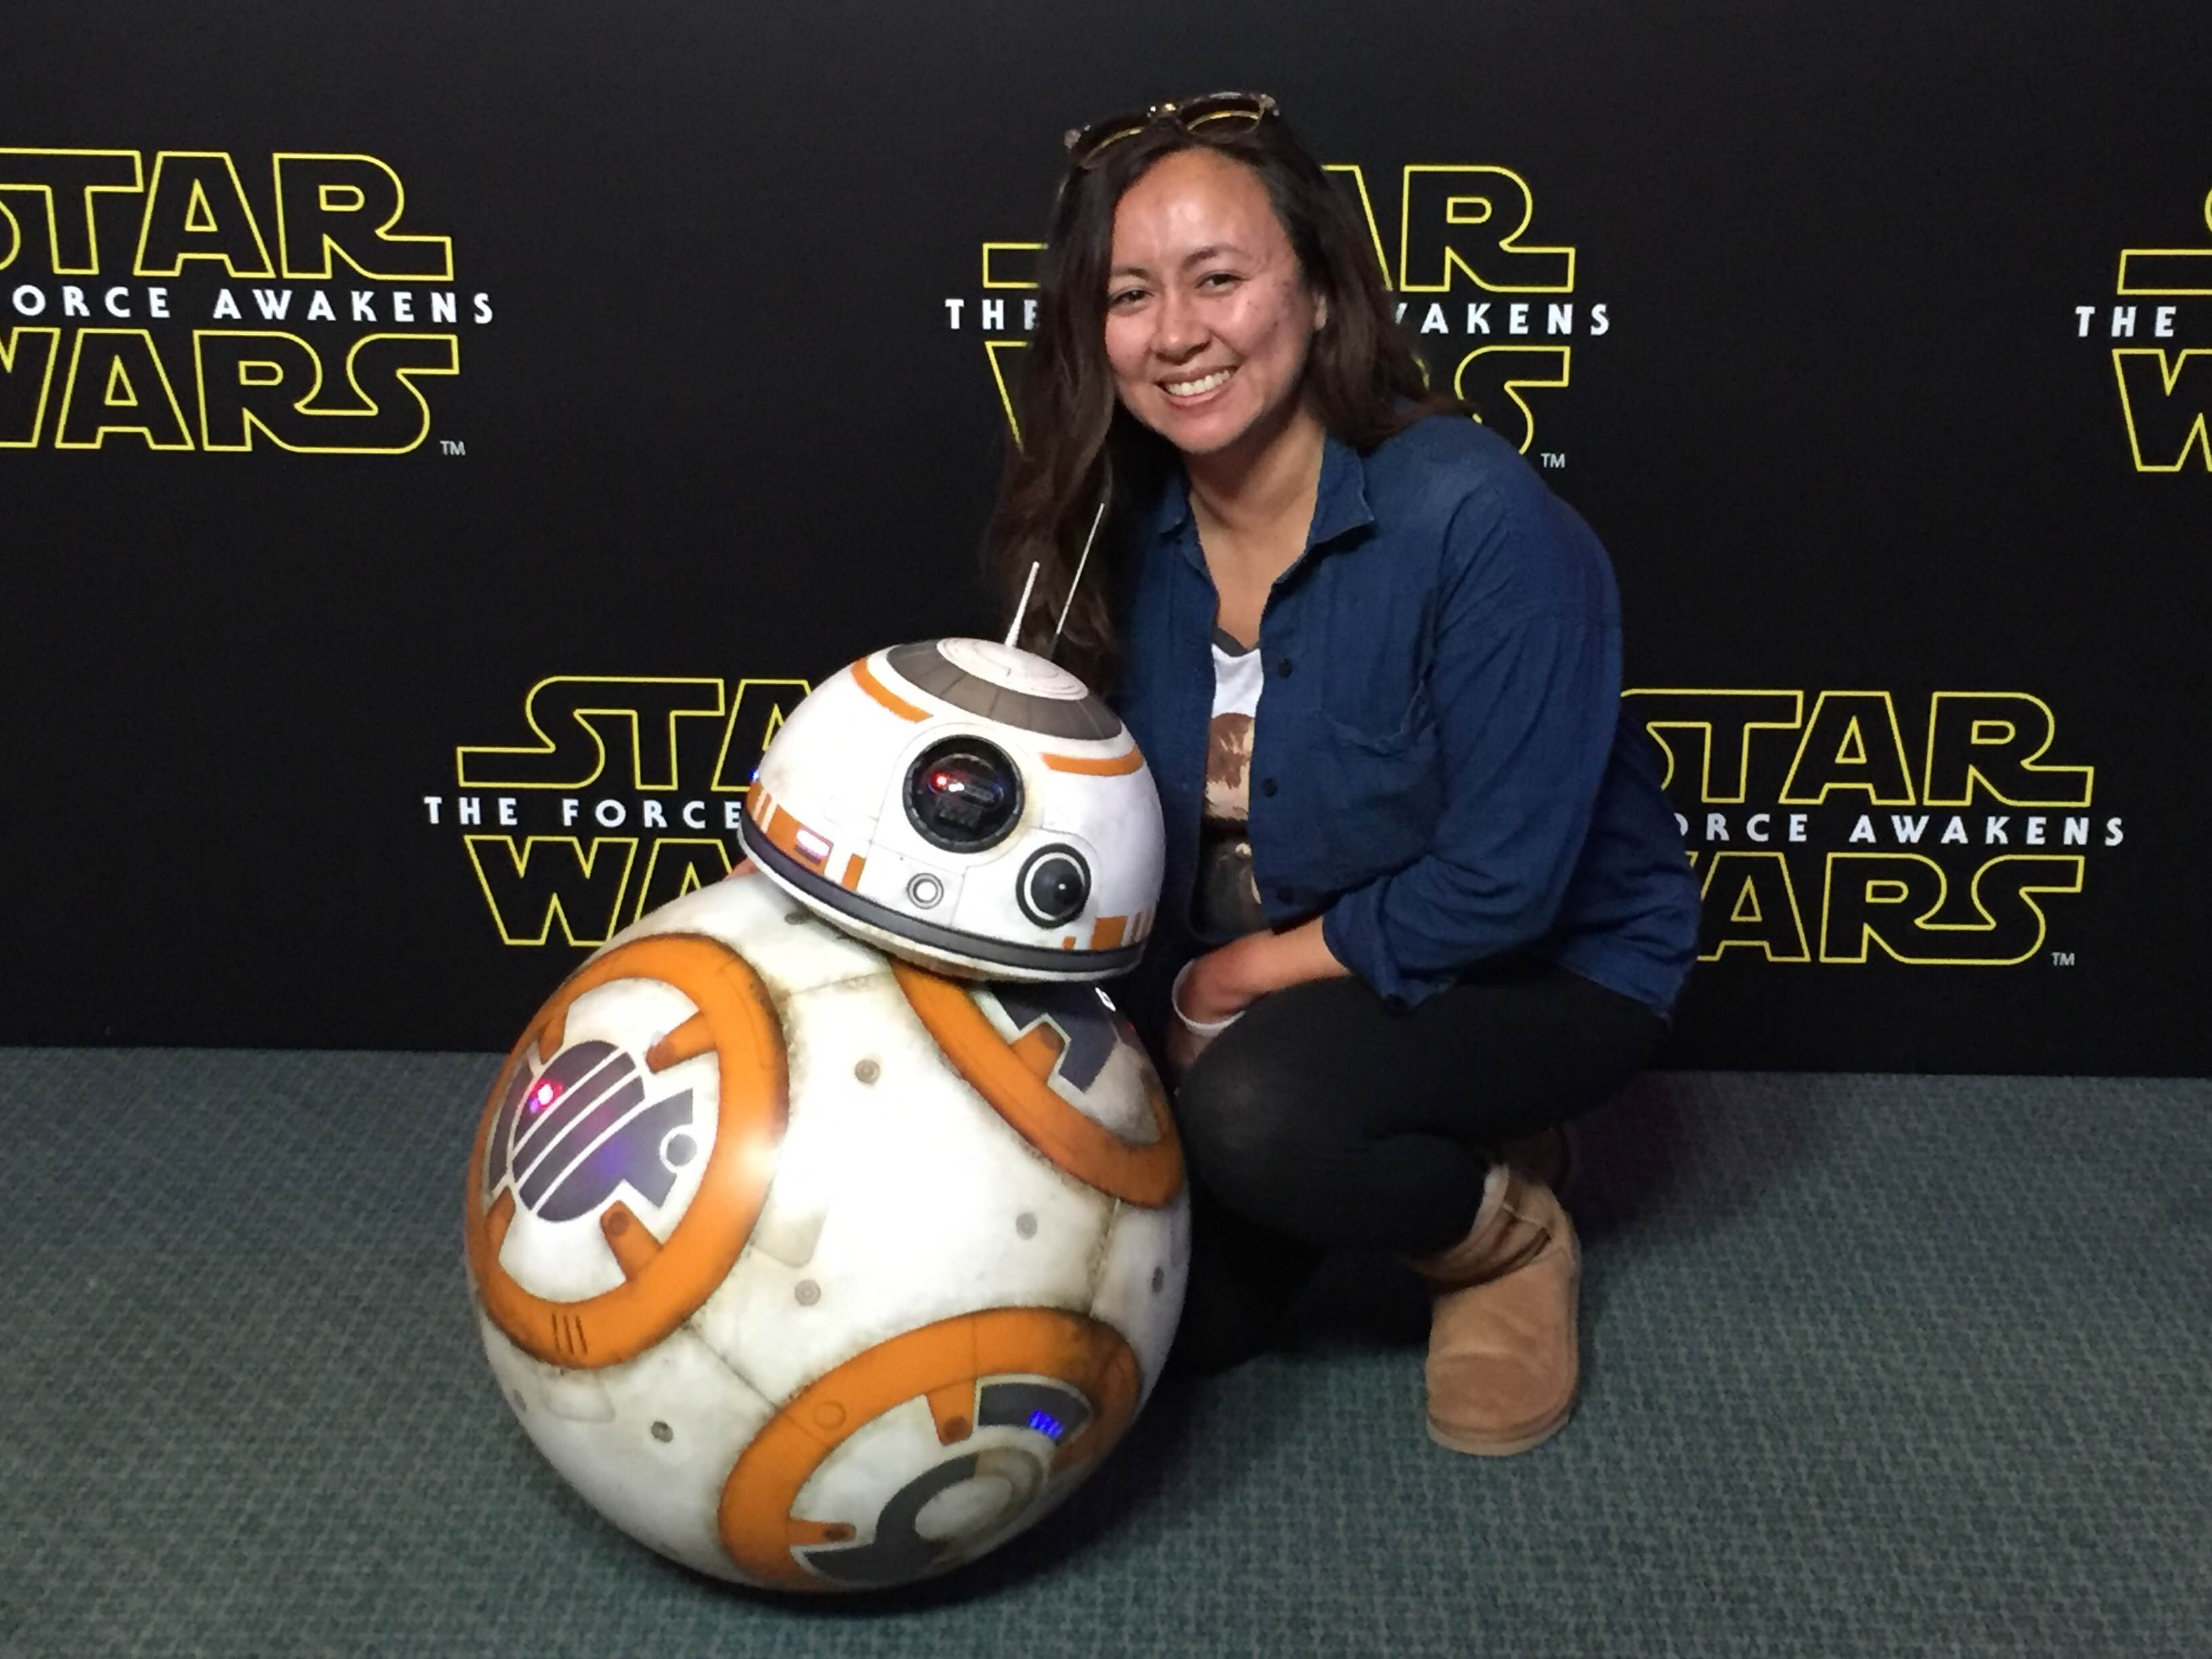 BB8 remote control, Star Wars toys, Star Wars Press Junket, The force awakens trailer